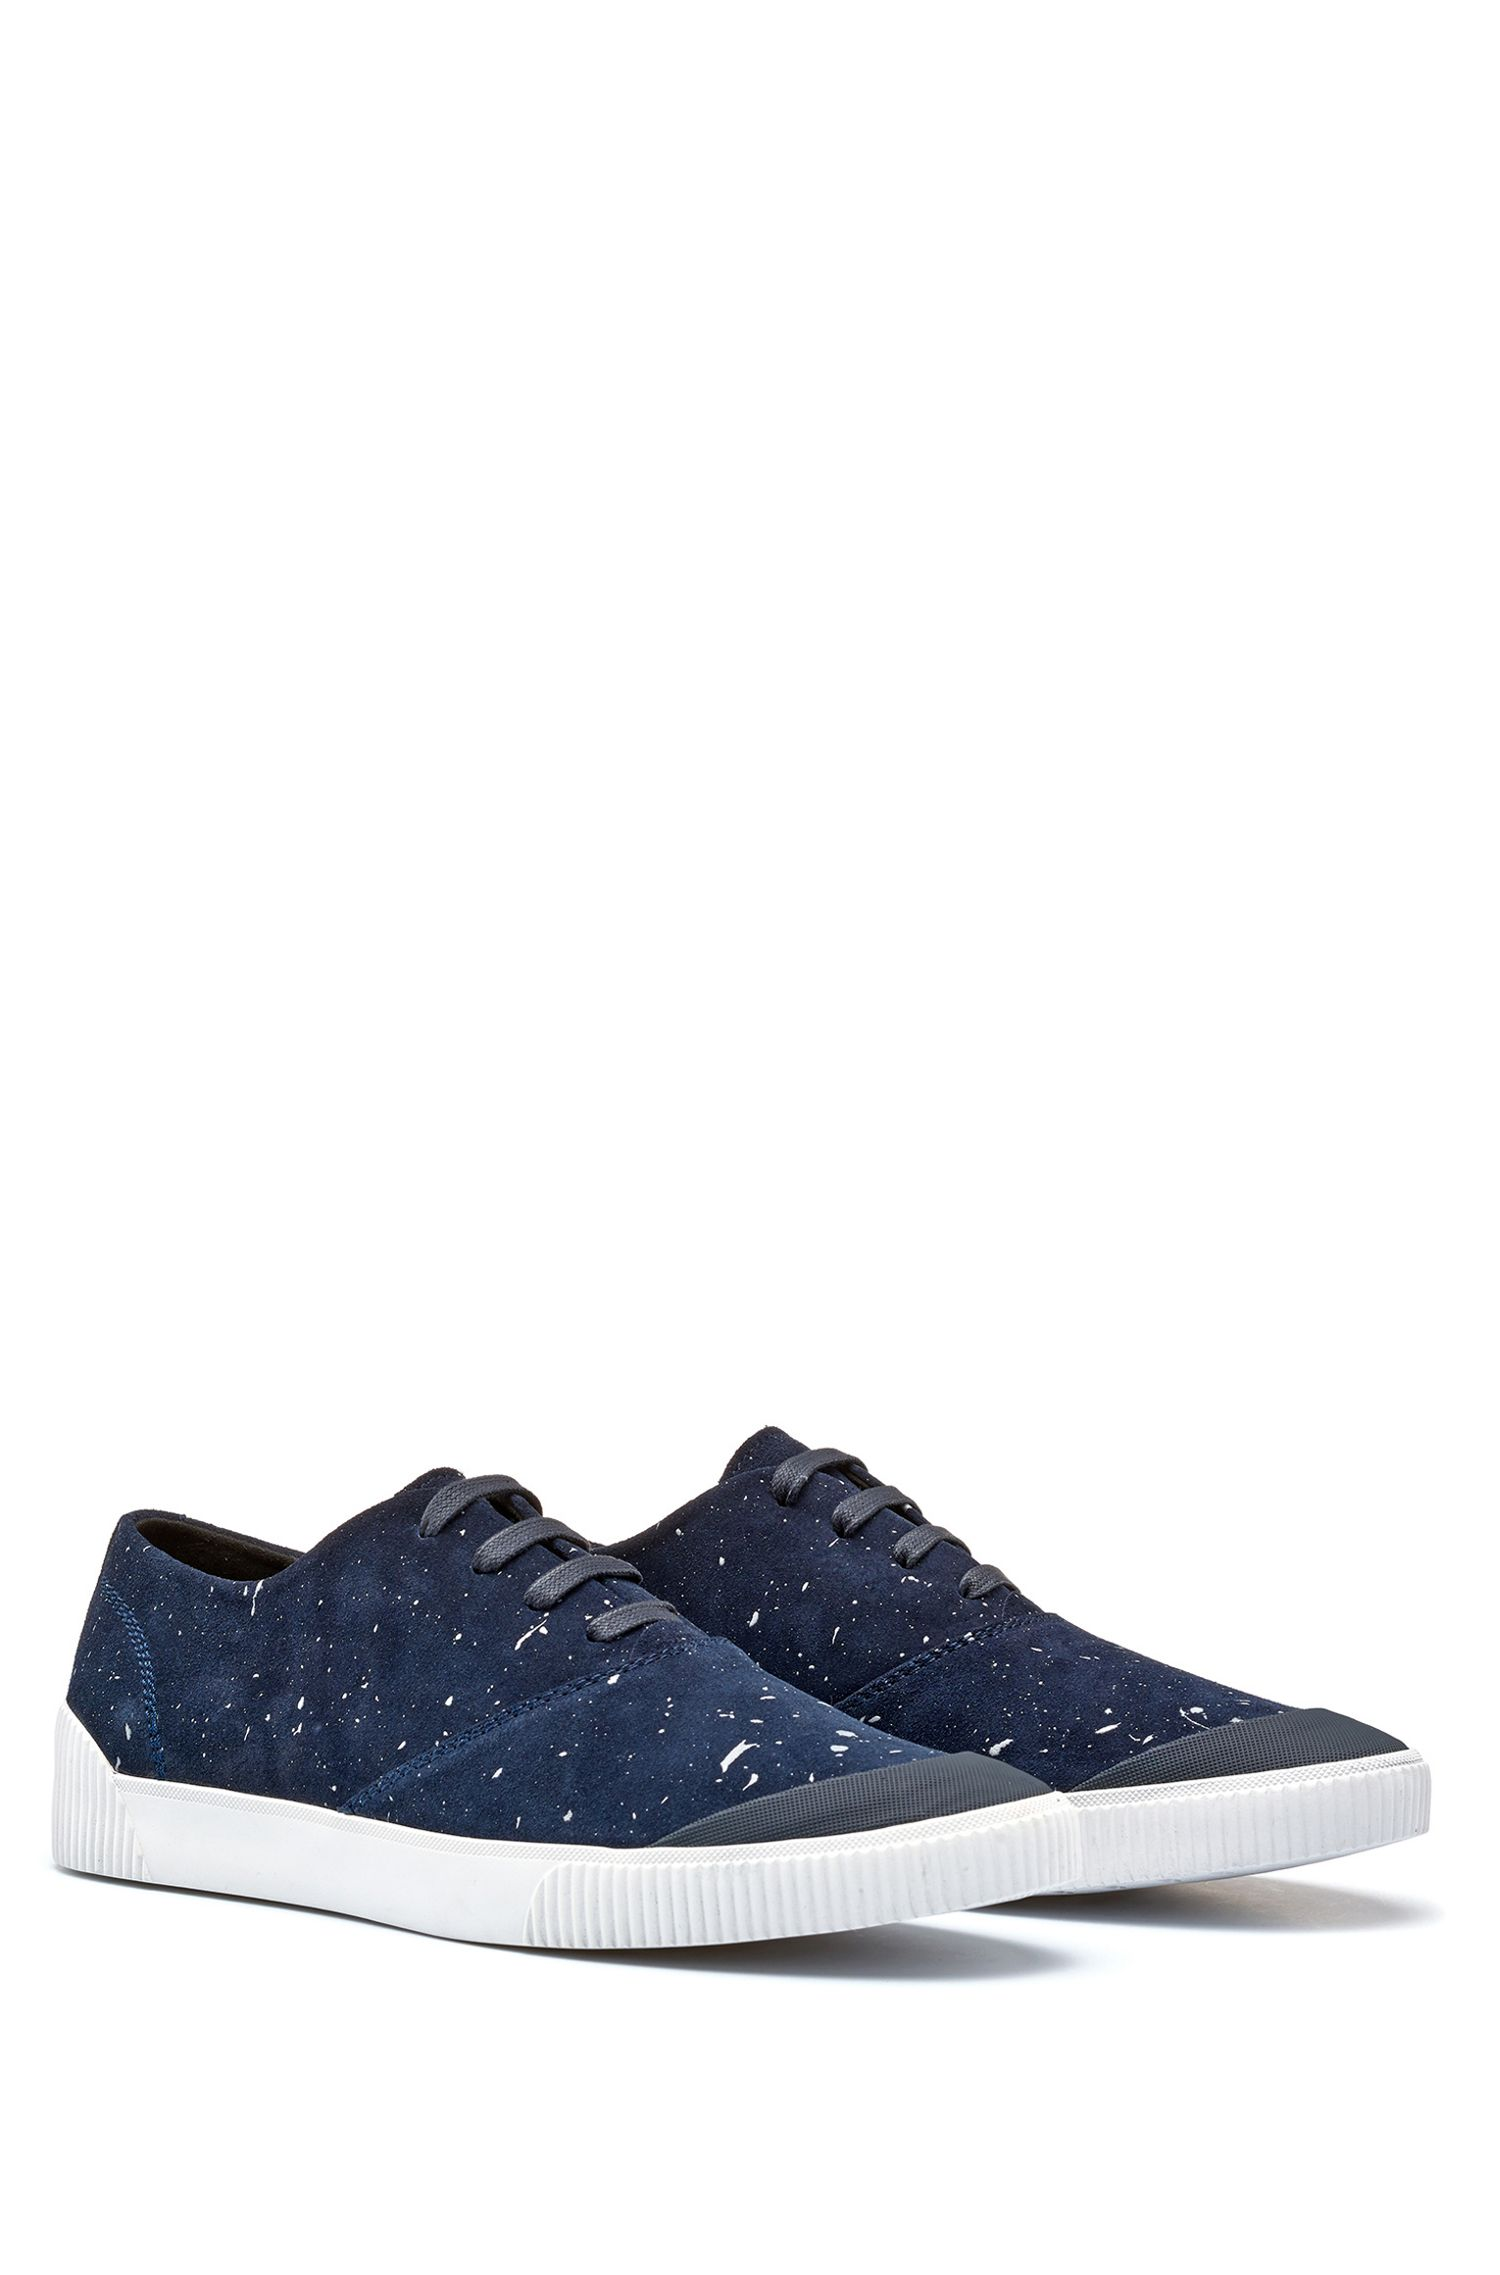 Paint Splattered Suede Tennis Shoe | Zero Tenn, Dark Blue